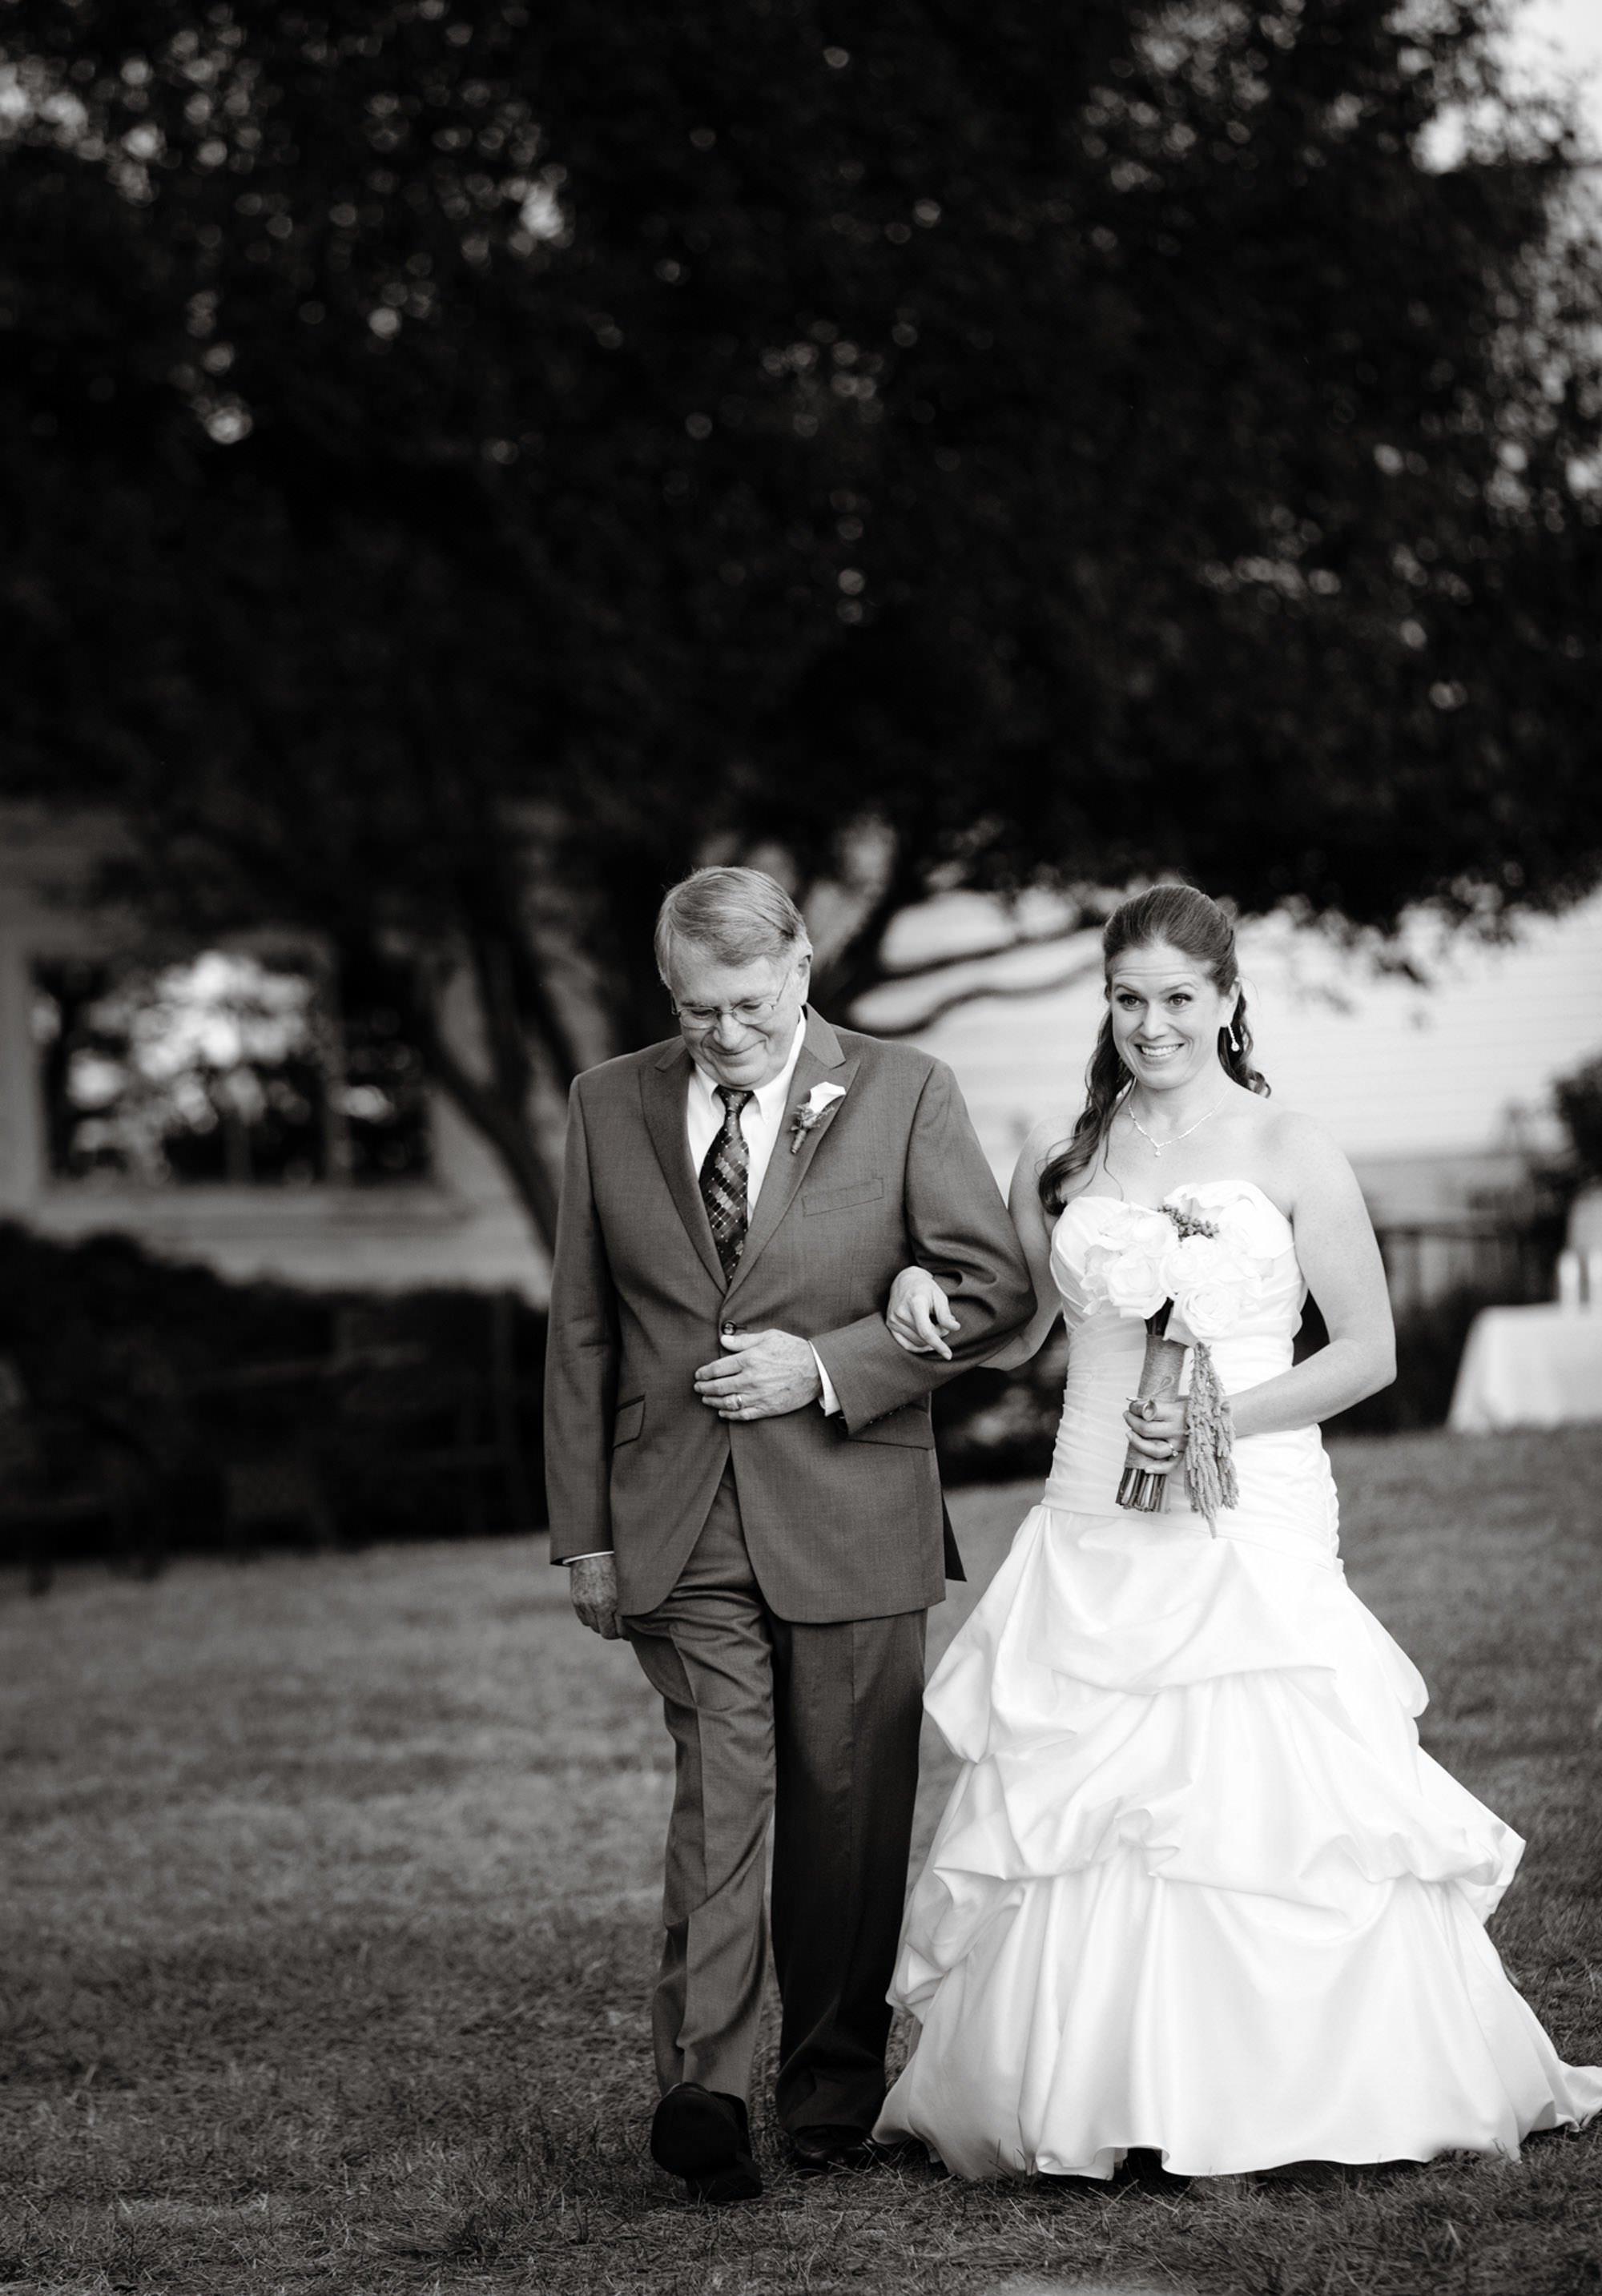 The bride is escorted by her father during the wedding ceremony at Comus Inn.